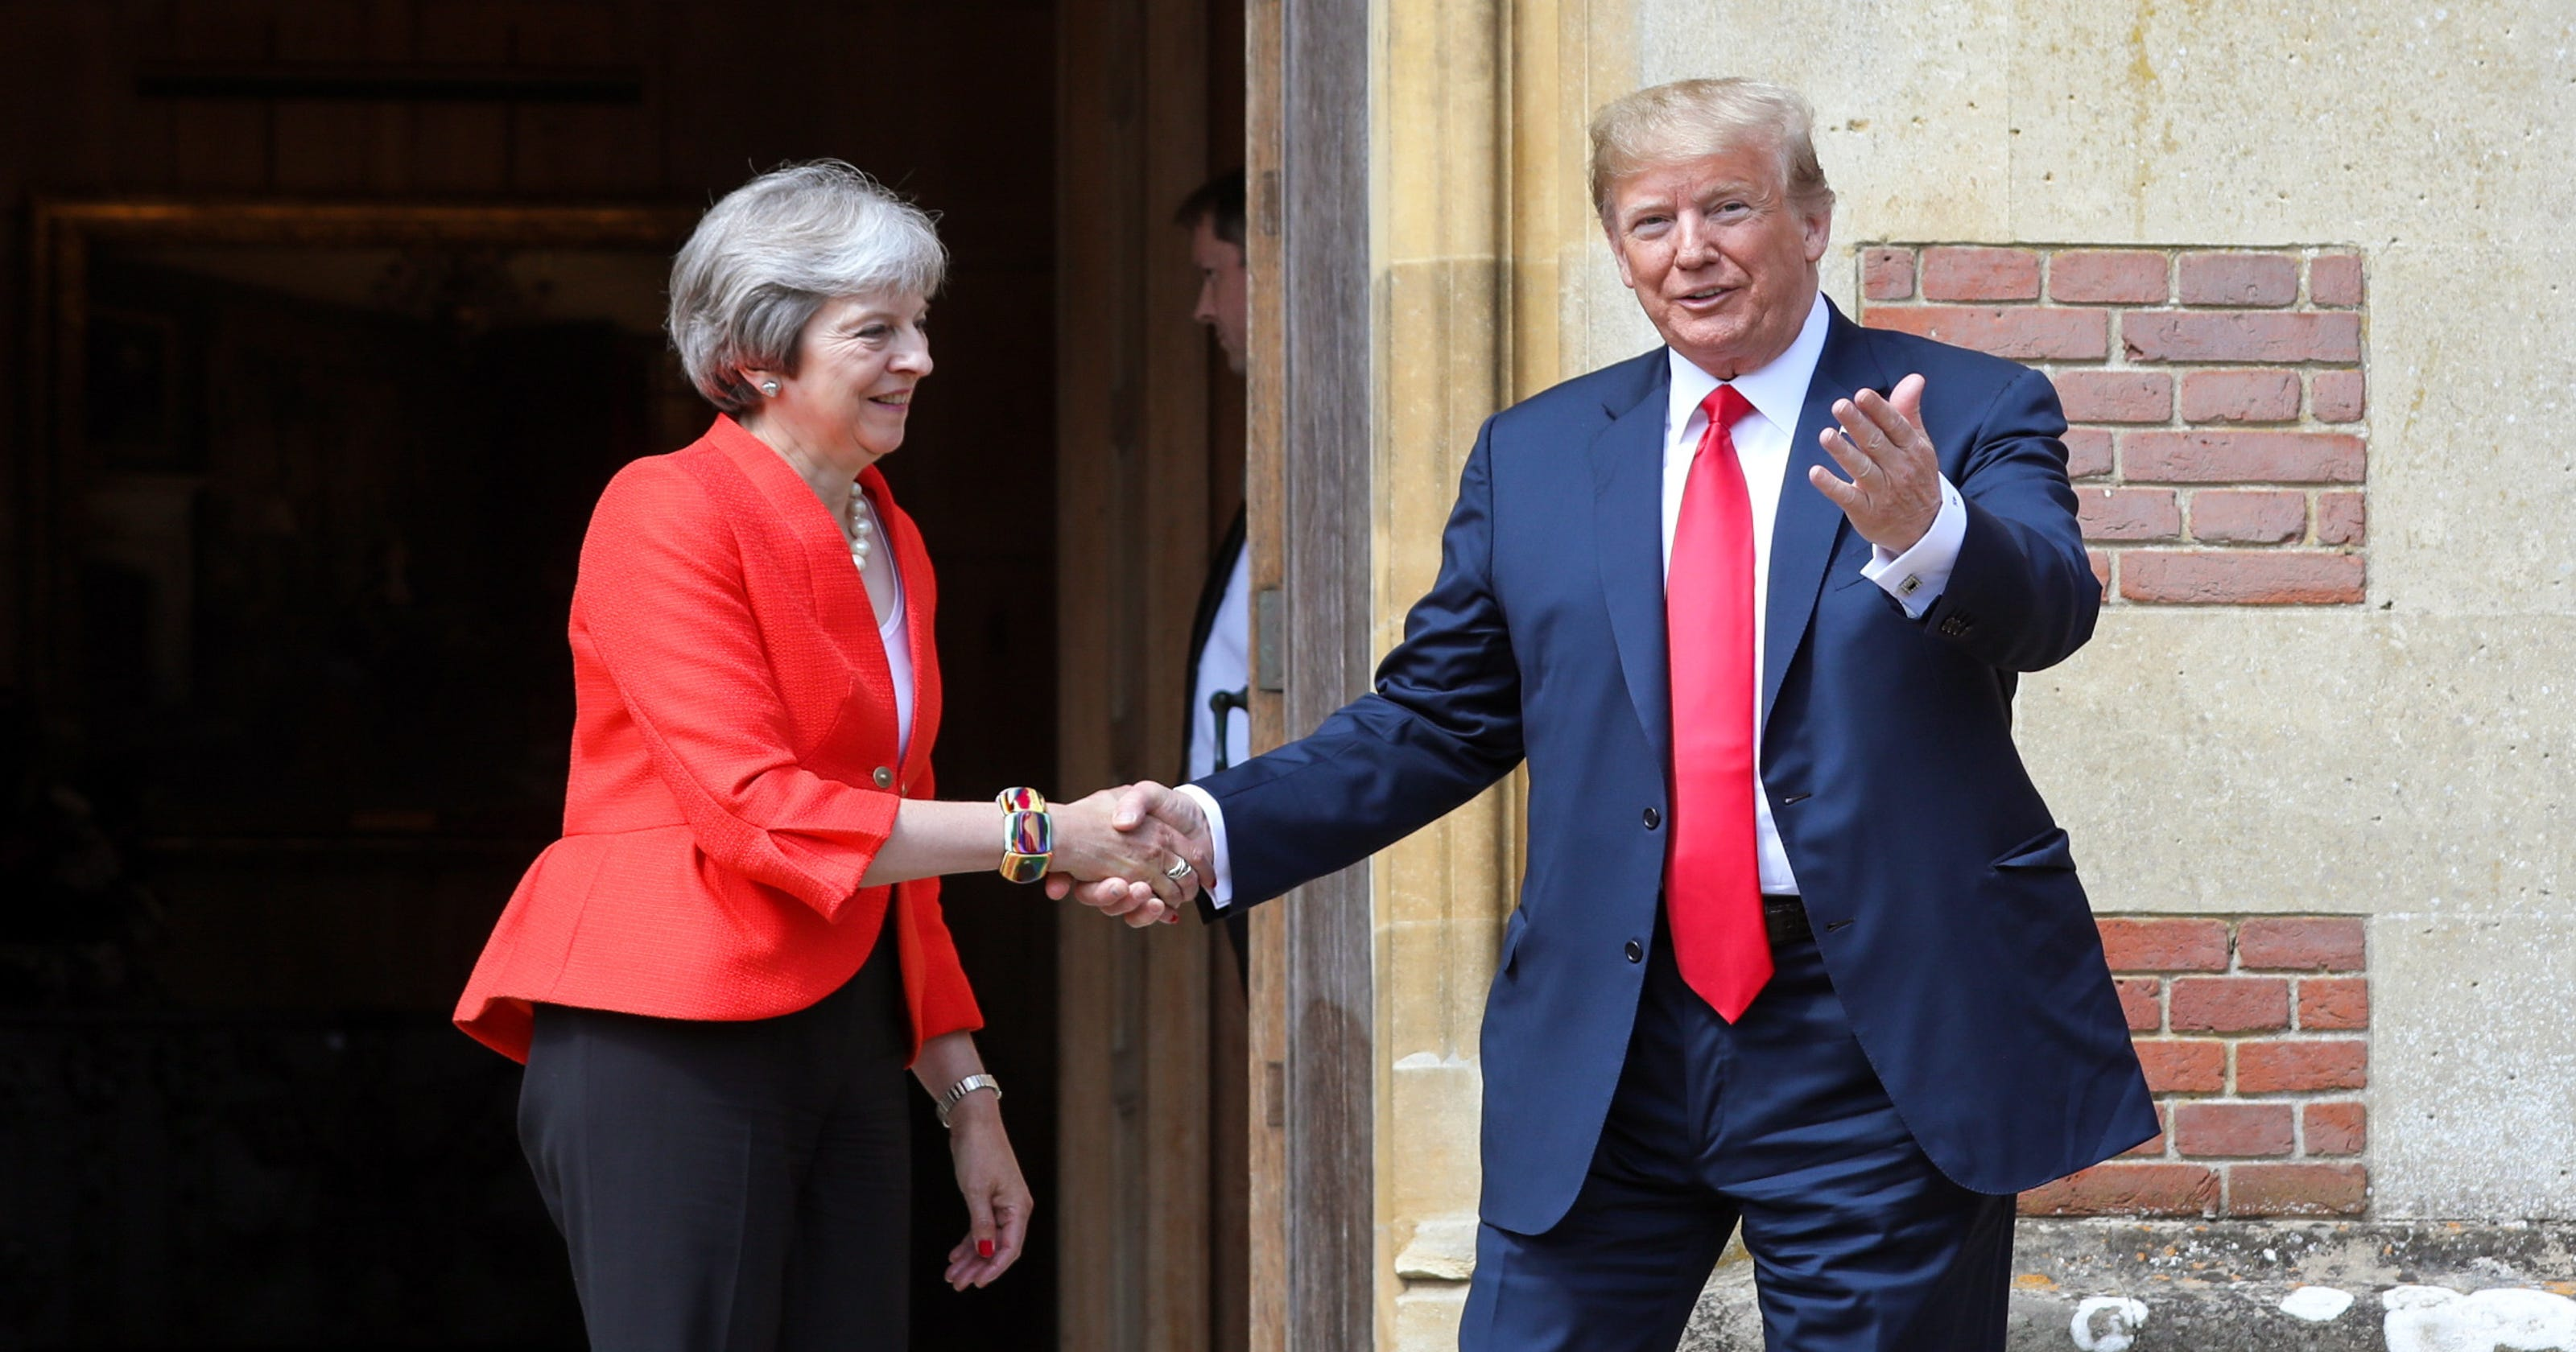 Trump In The Uk Interview With The Sun Threatens To Overshadow Visit